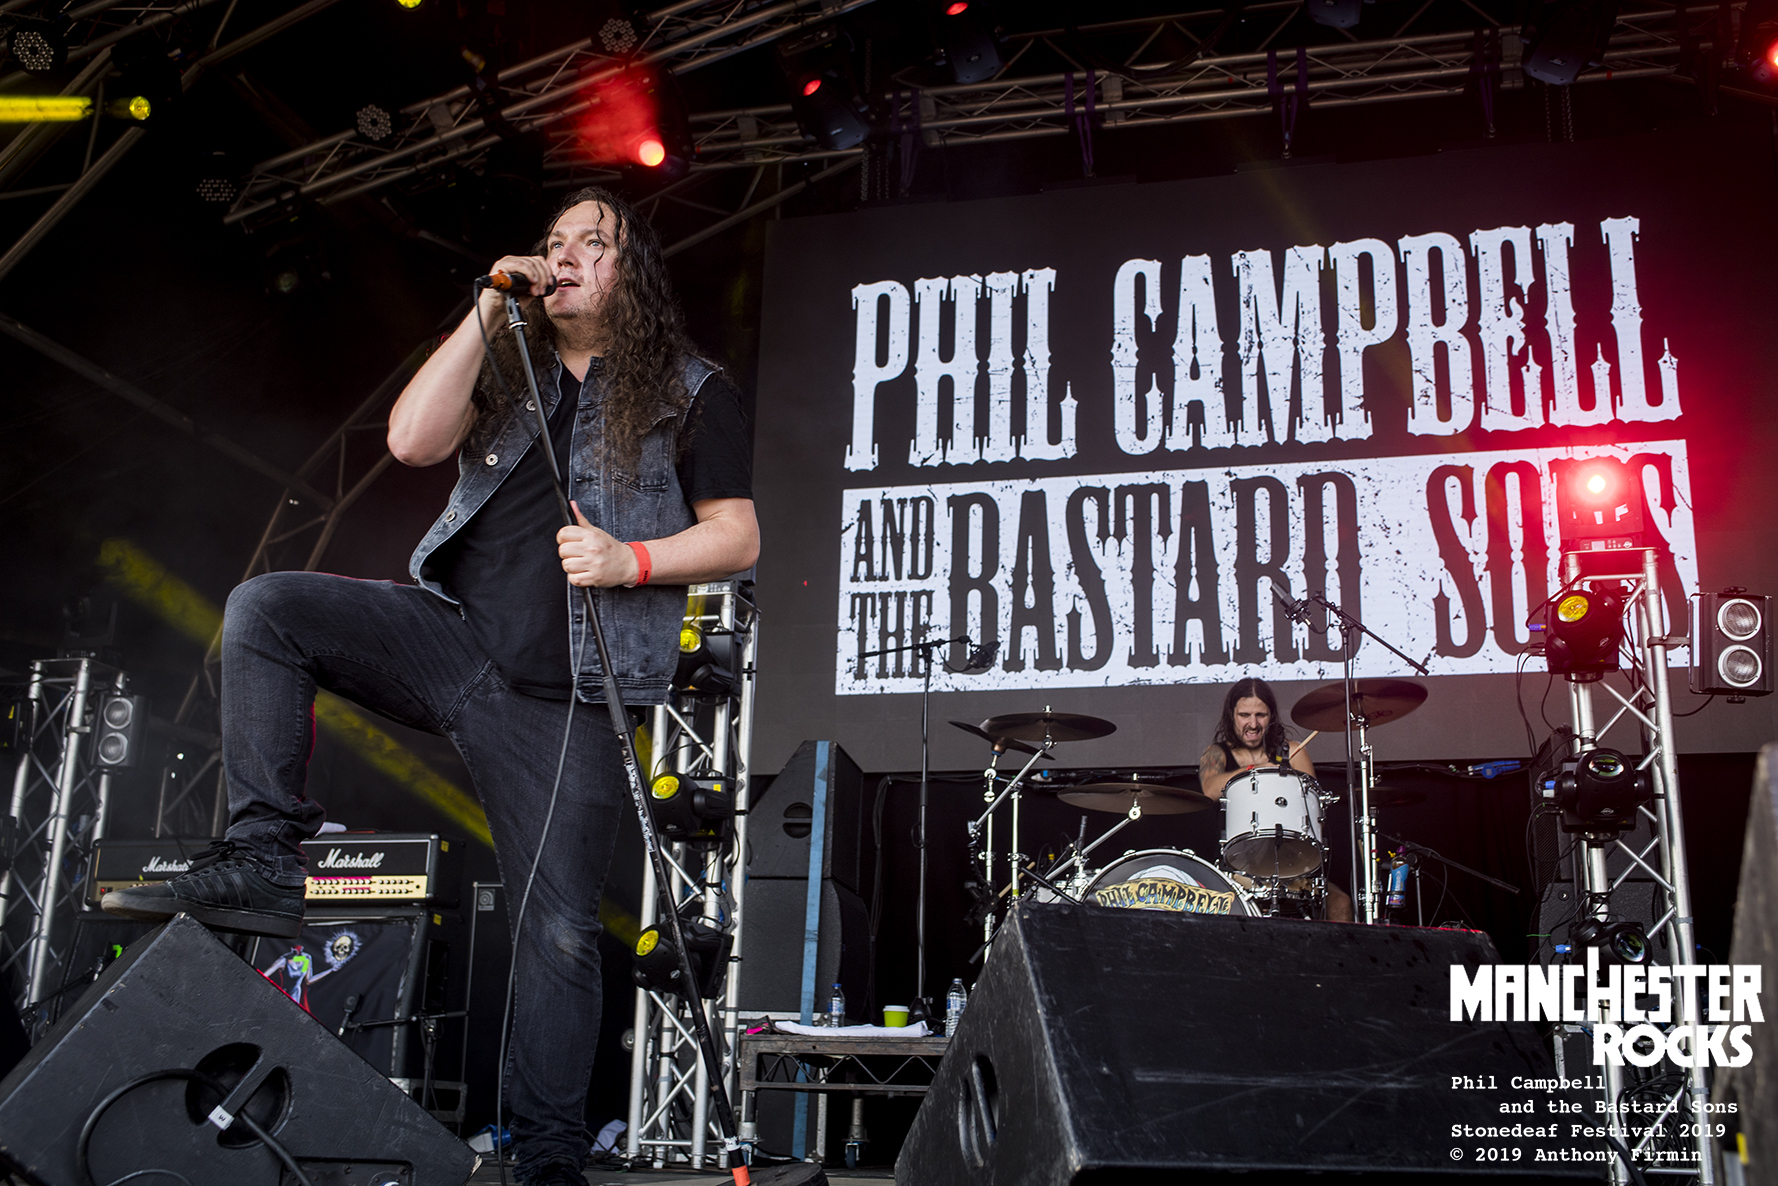 PhilCampbell-Stonedeaf-1069-small.jpg